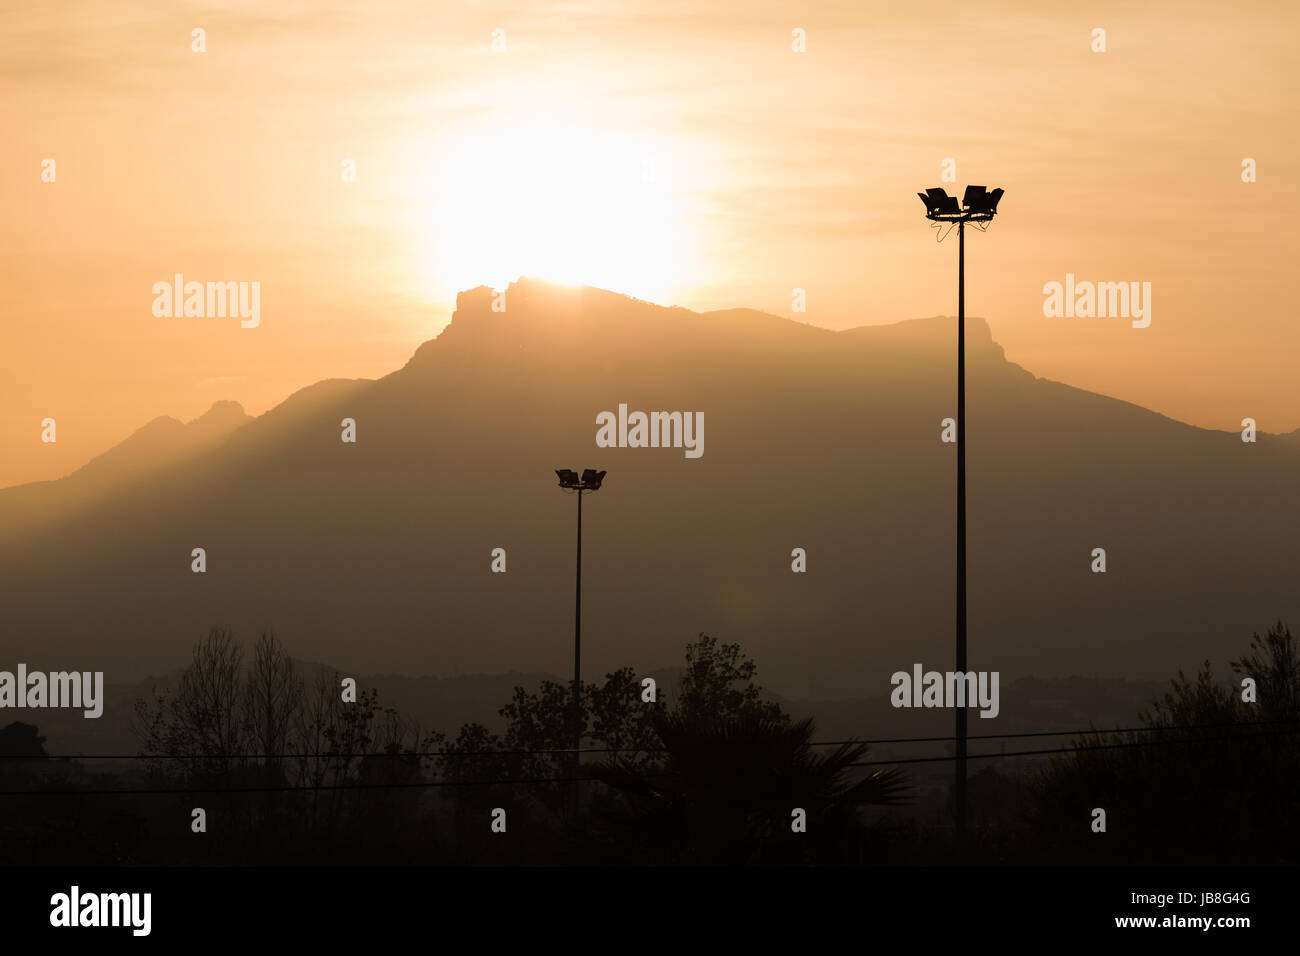 Telegraph poles cables in the sunset with mountains in the background - Stock Image